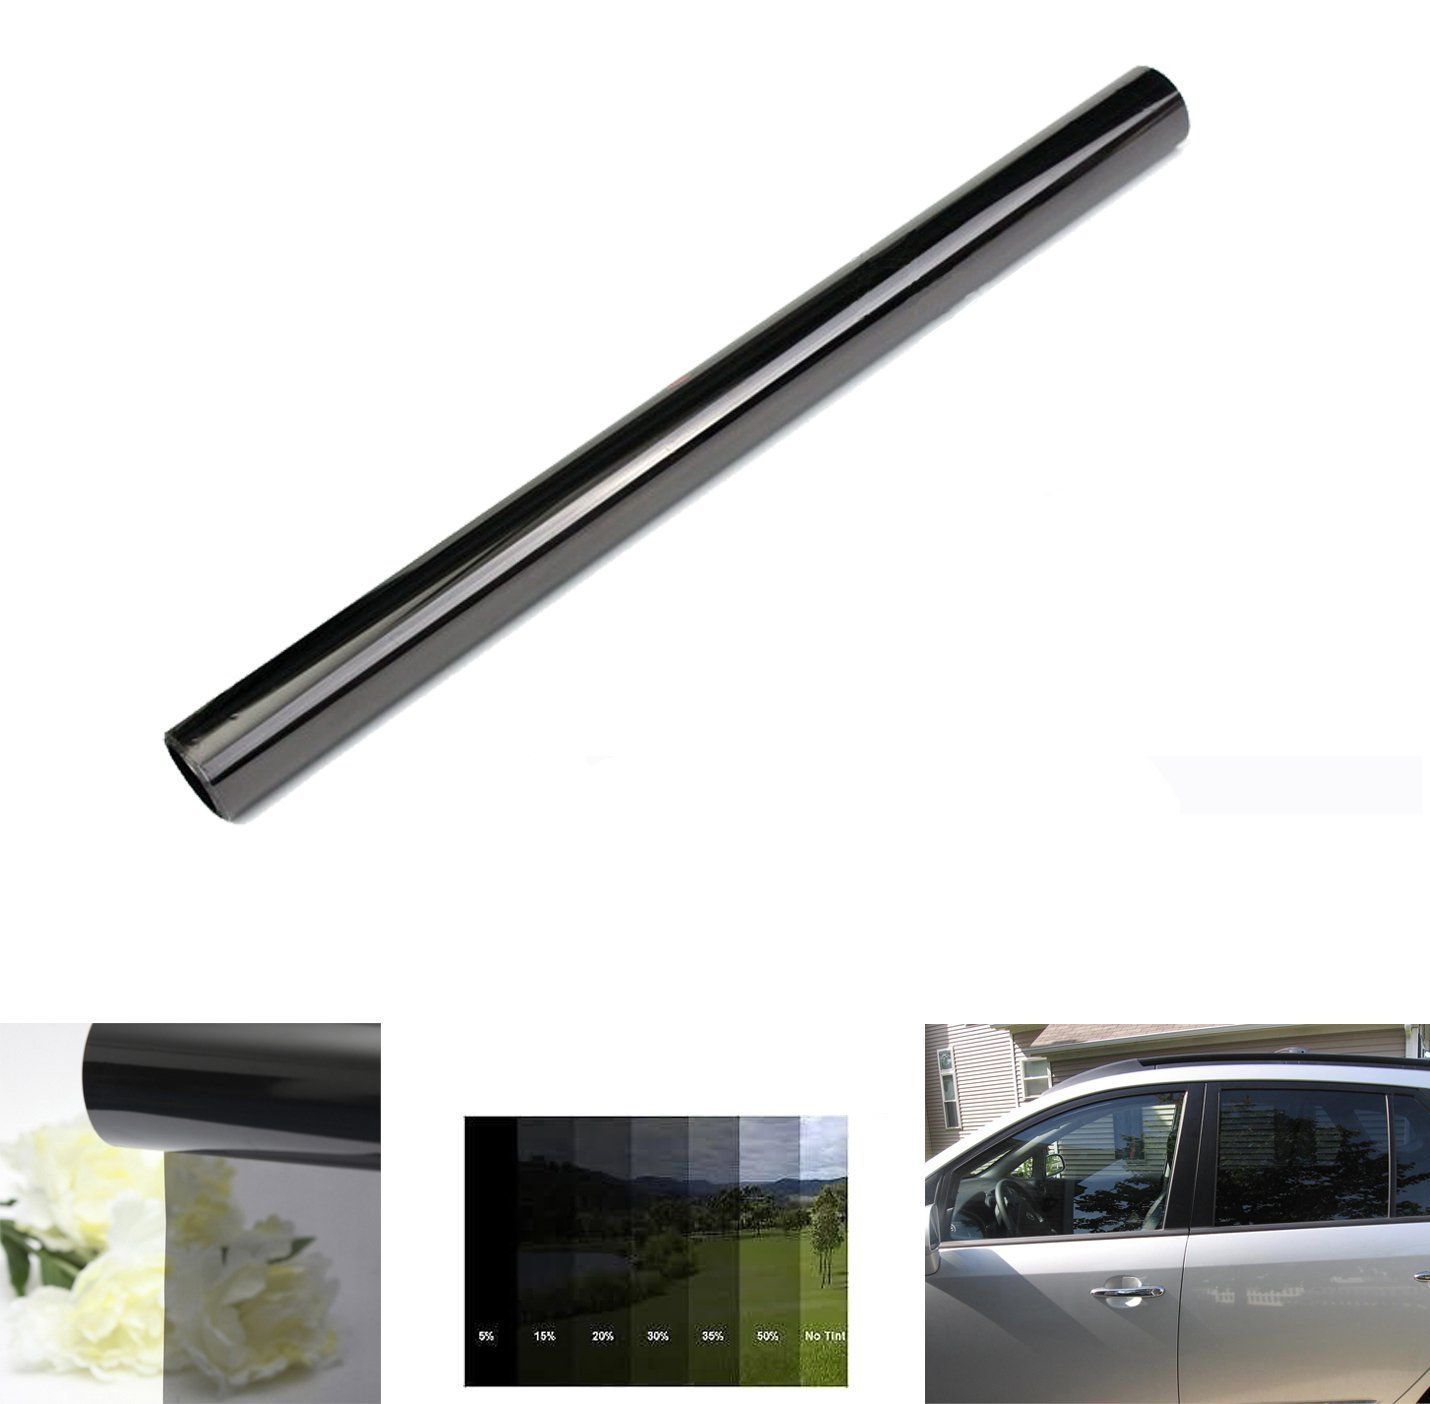 35 Vlt Black Tint Film Car Window Home Office Pro Roll Uv Protection 30 X 23ft Vlt Black Tint Film Car Window